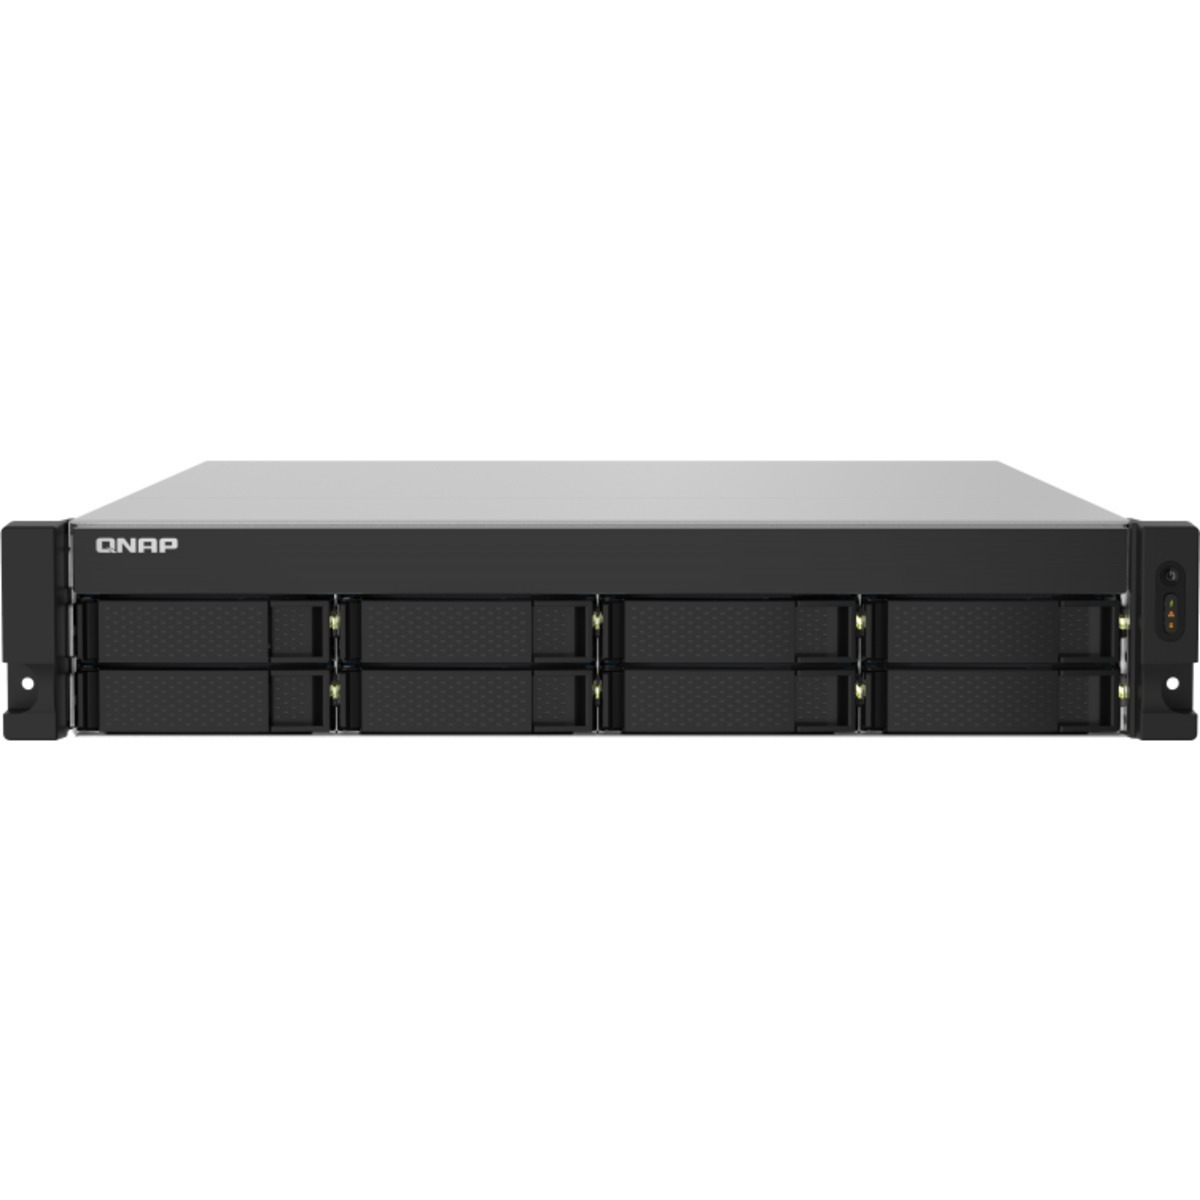 buy $3988 QNAP TS-832PXU 96tb RackMount NAS - Network Attached Storage Device 8x12000gb Seagate IronWolf ST12000VN0008 3.5 7200rpm SATA 6Gb/s HDD NAS Class Drives Installed - Burn-In Tested - nas headquarters buy network attached storage server device das new raid-5 free shipping usa holiday new year clearance sale TS-832PXU